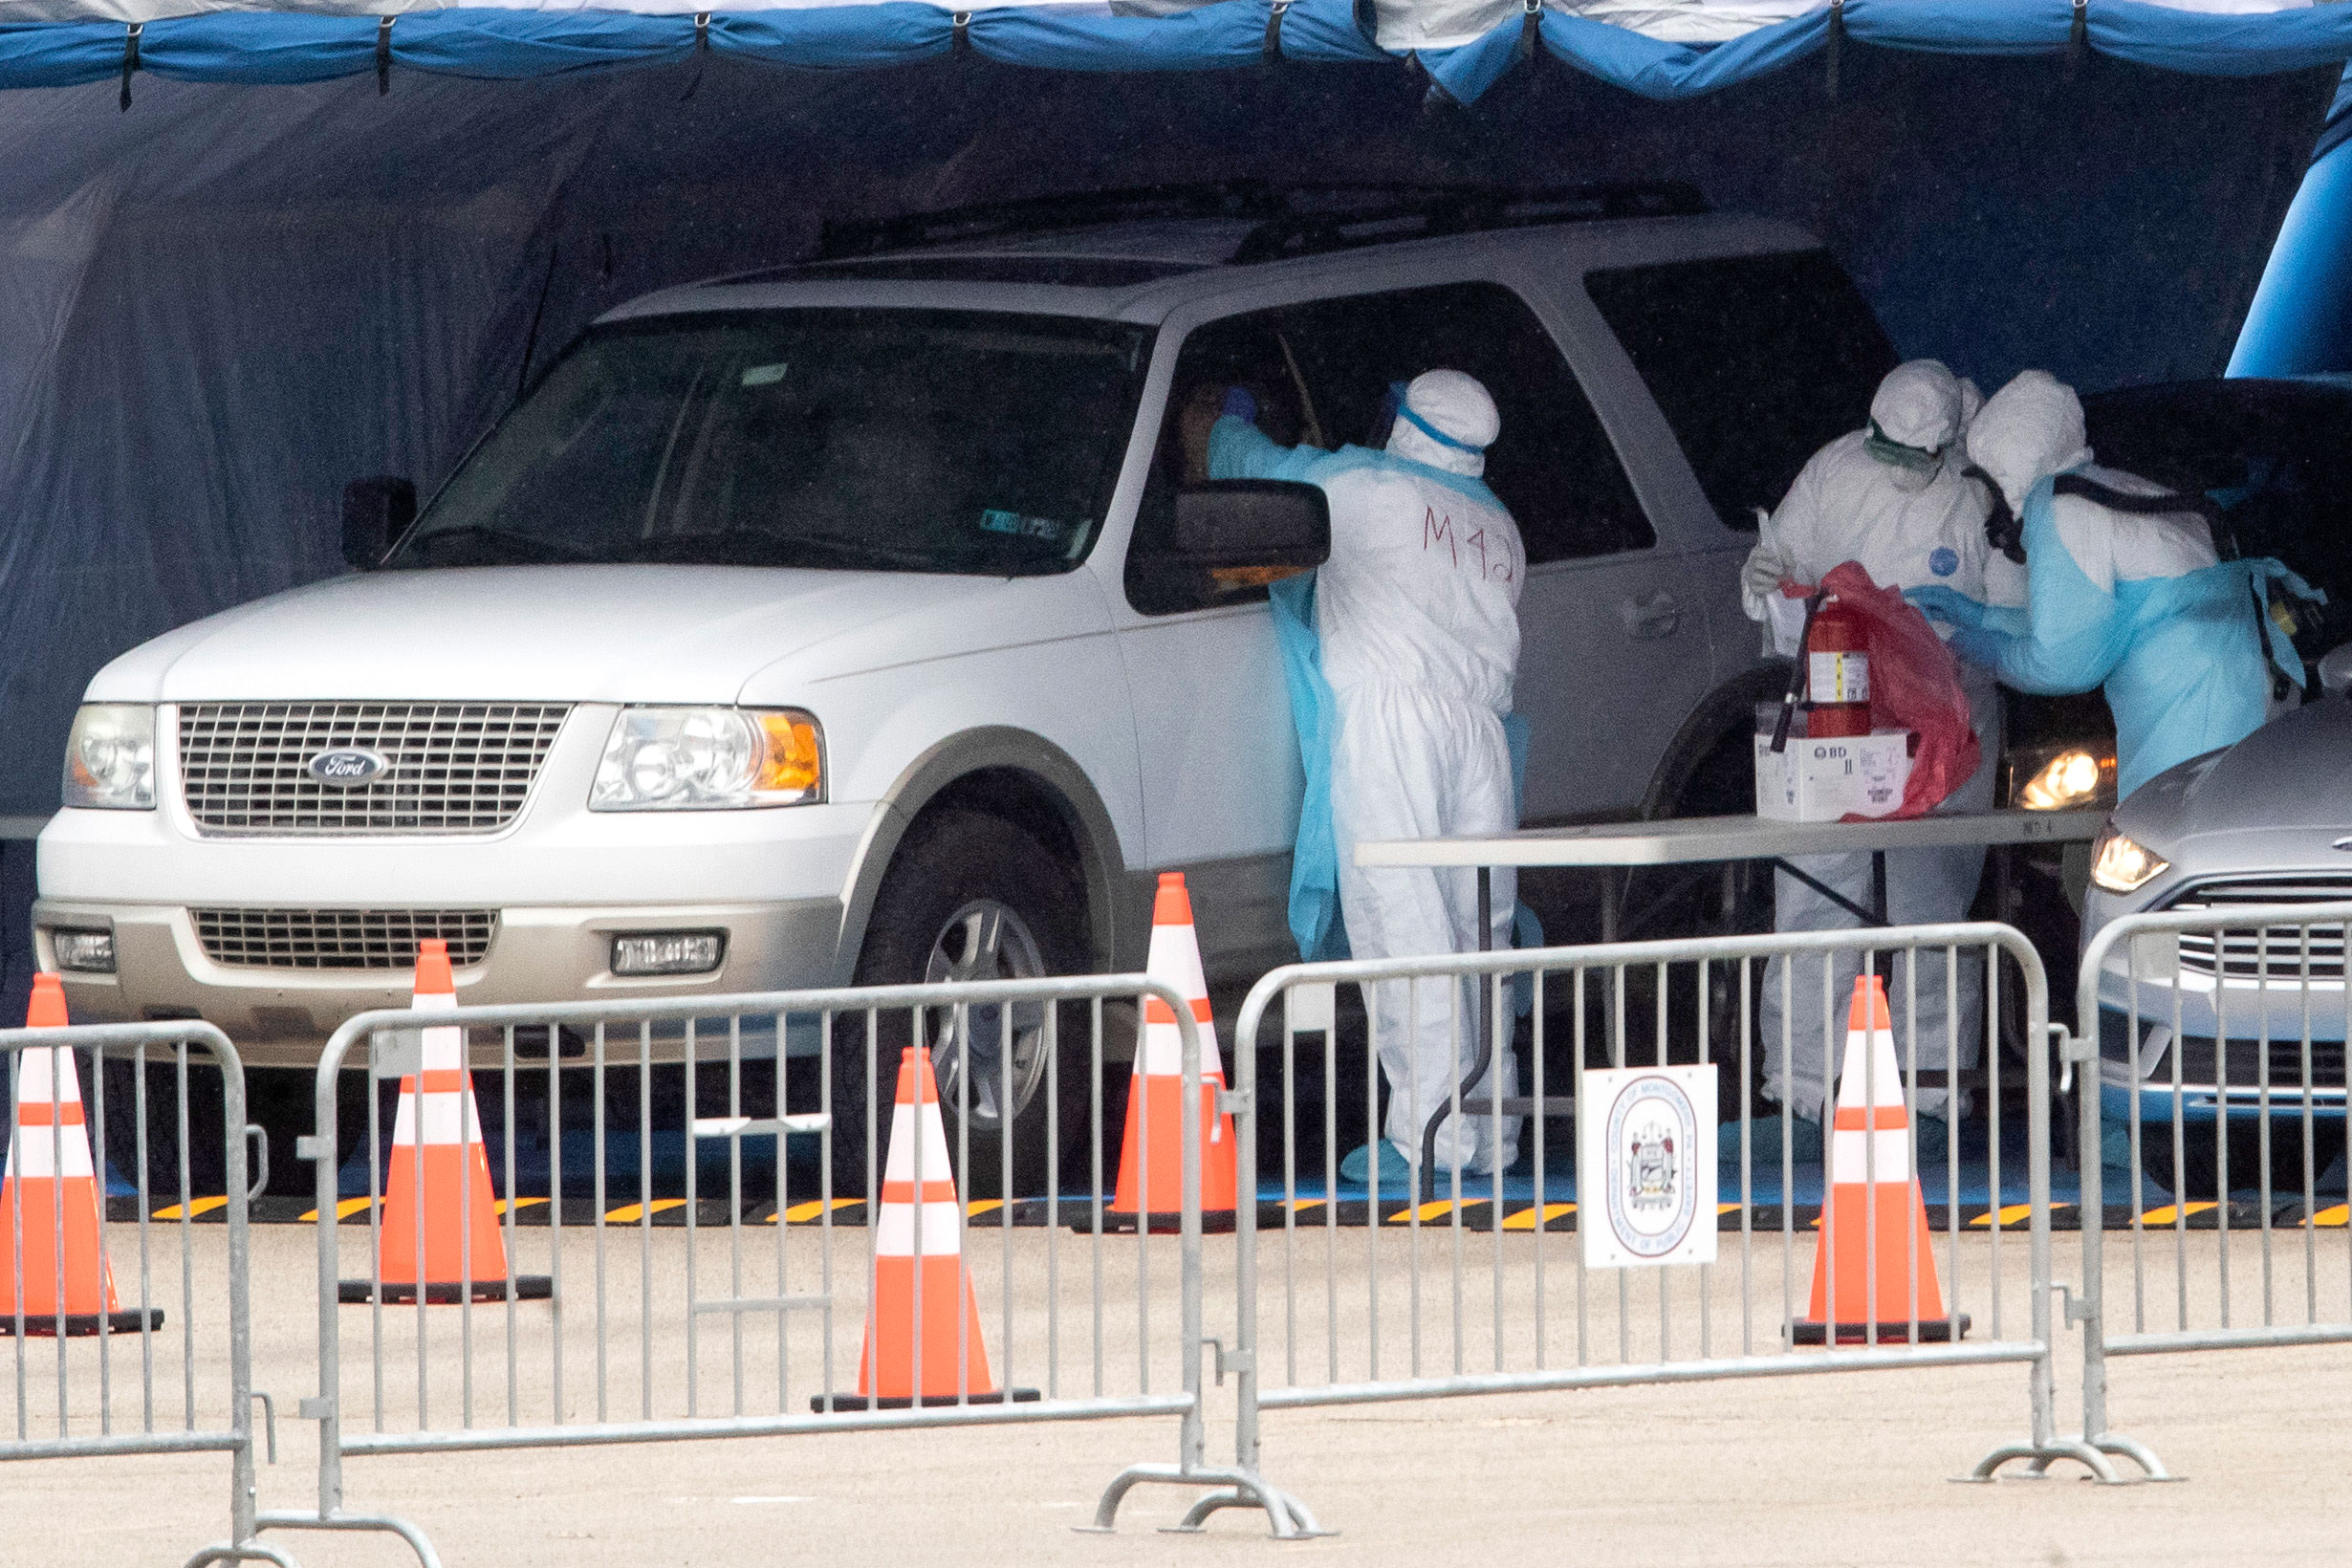 Medical workers perform a coronavirus test on driver at the Temple University Ambler campus in Ambler, Pennsylvania on March 25.